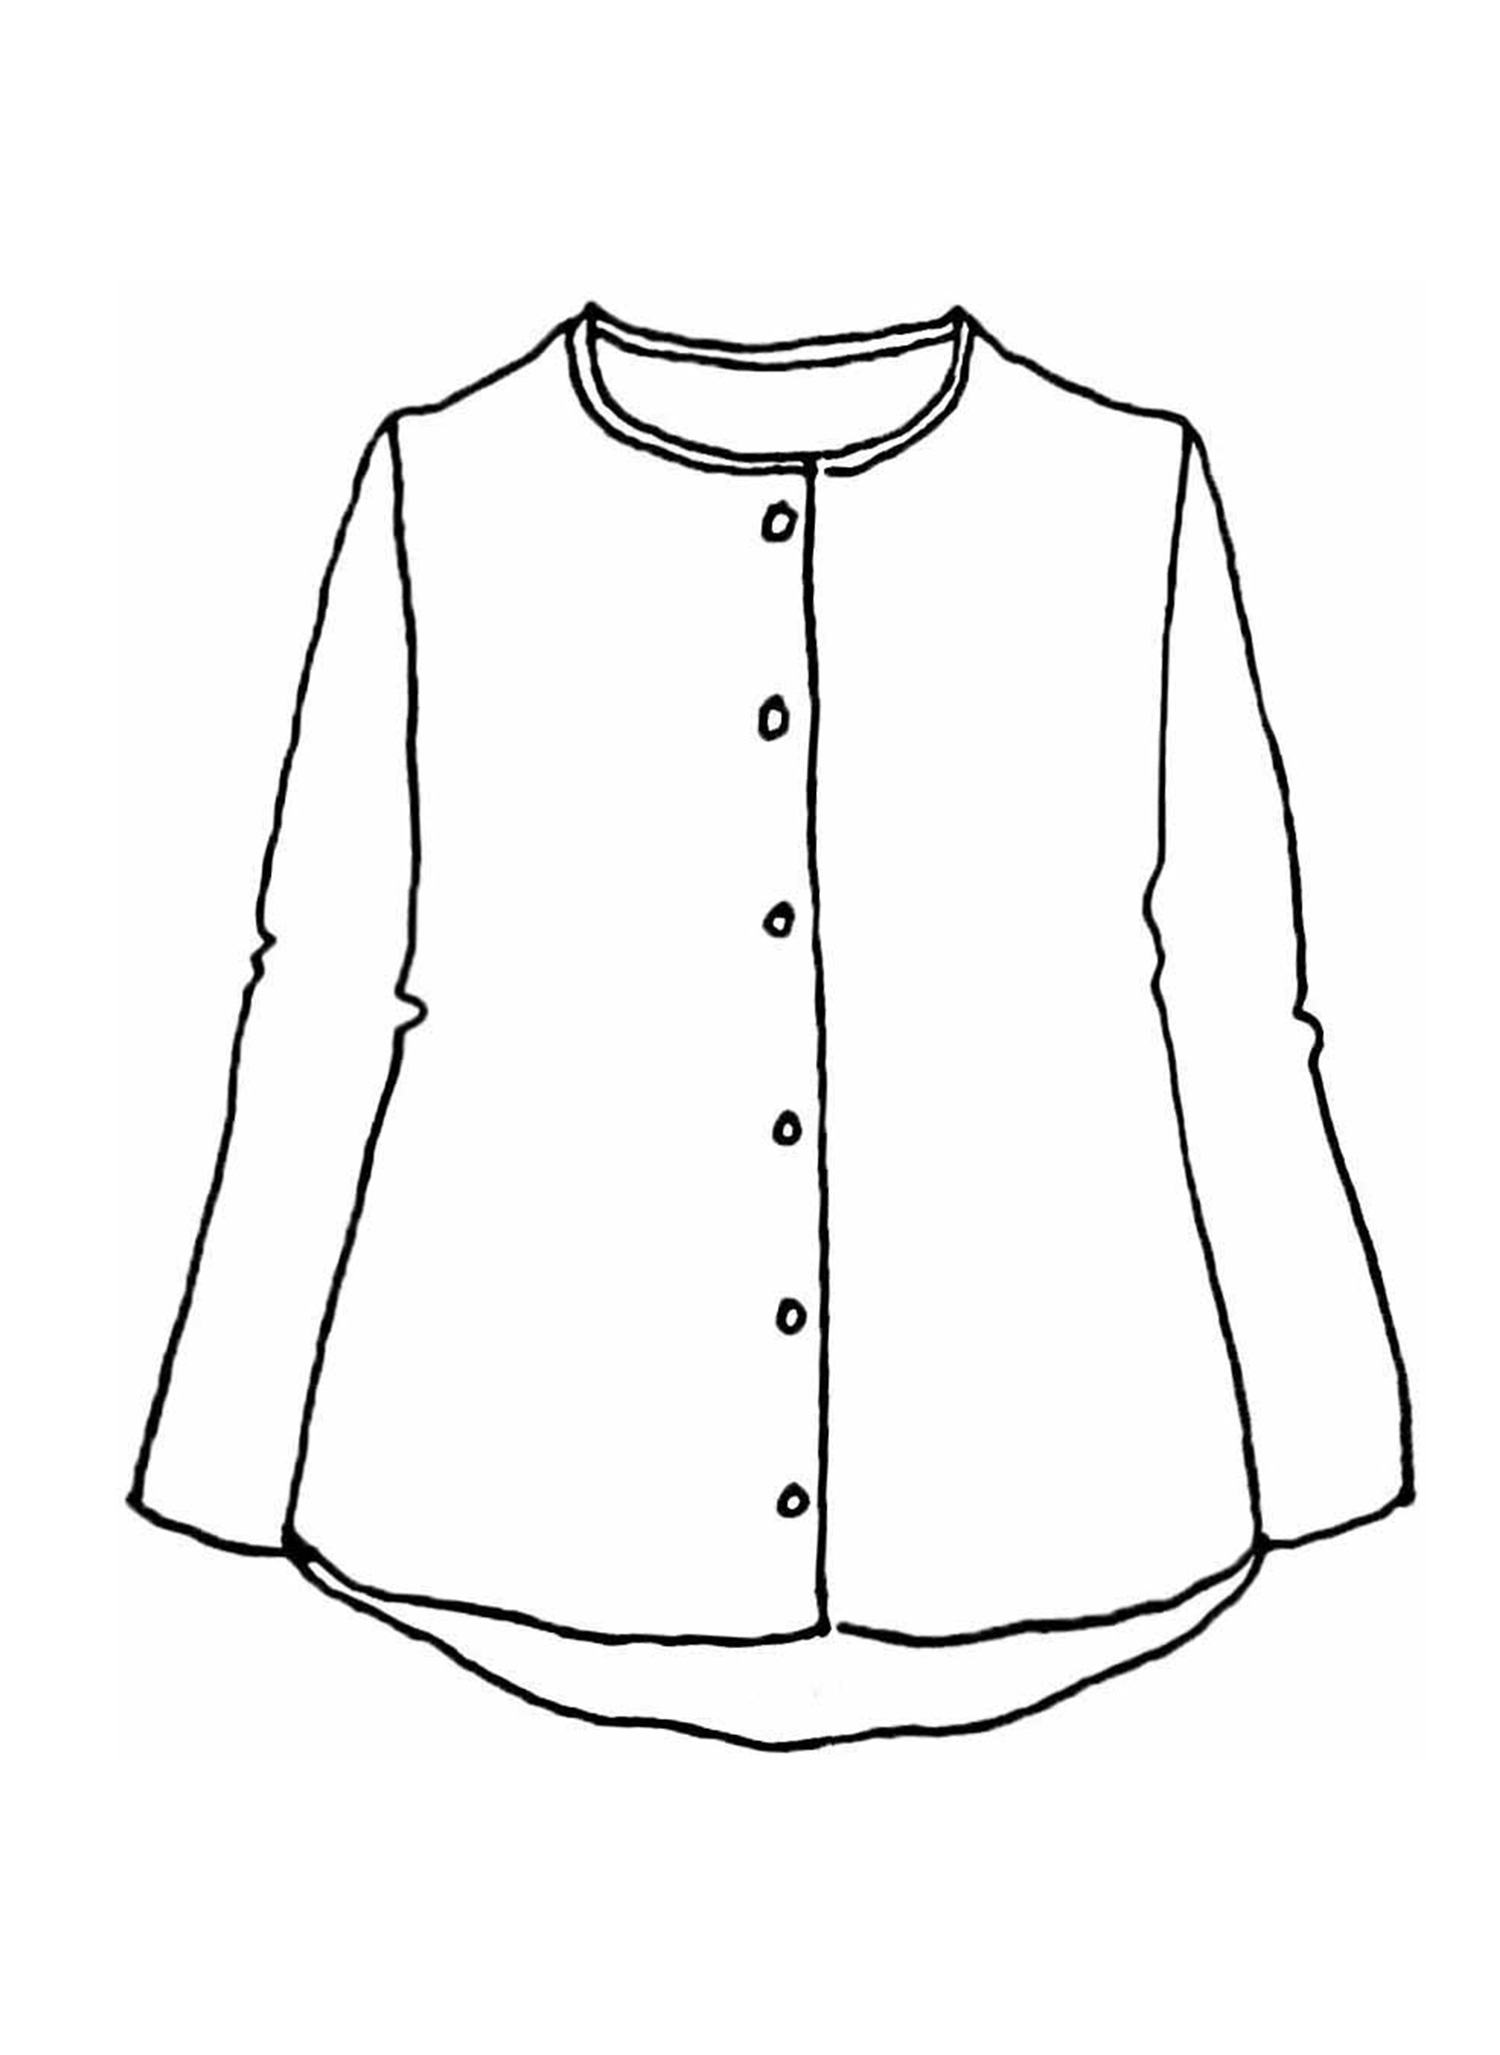 Discover Blouse sketch image